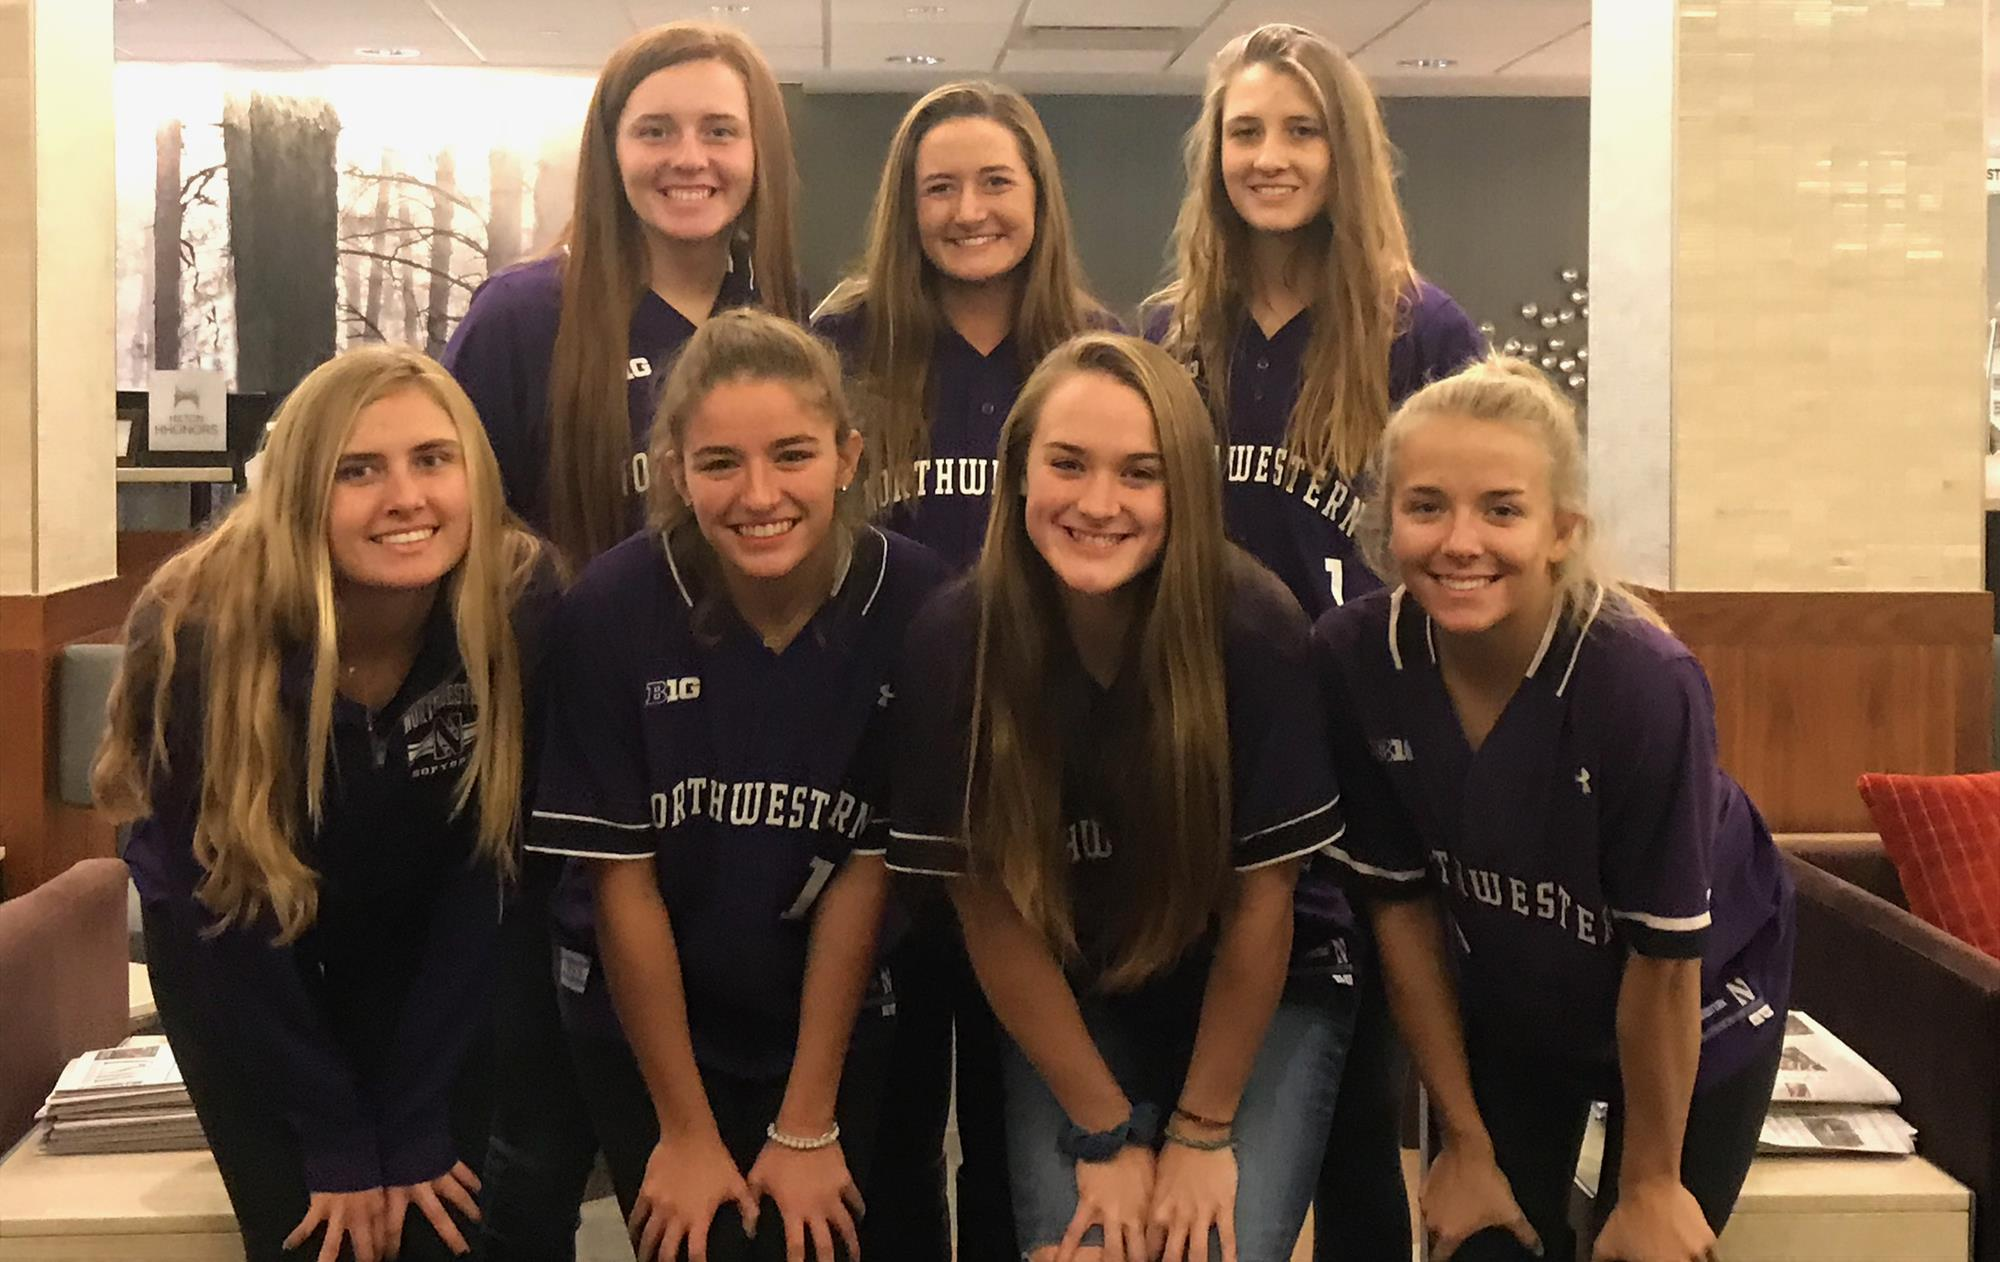 NU Announces Nation's 9th-Ranked Class of 2022 - Northwestern